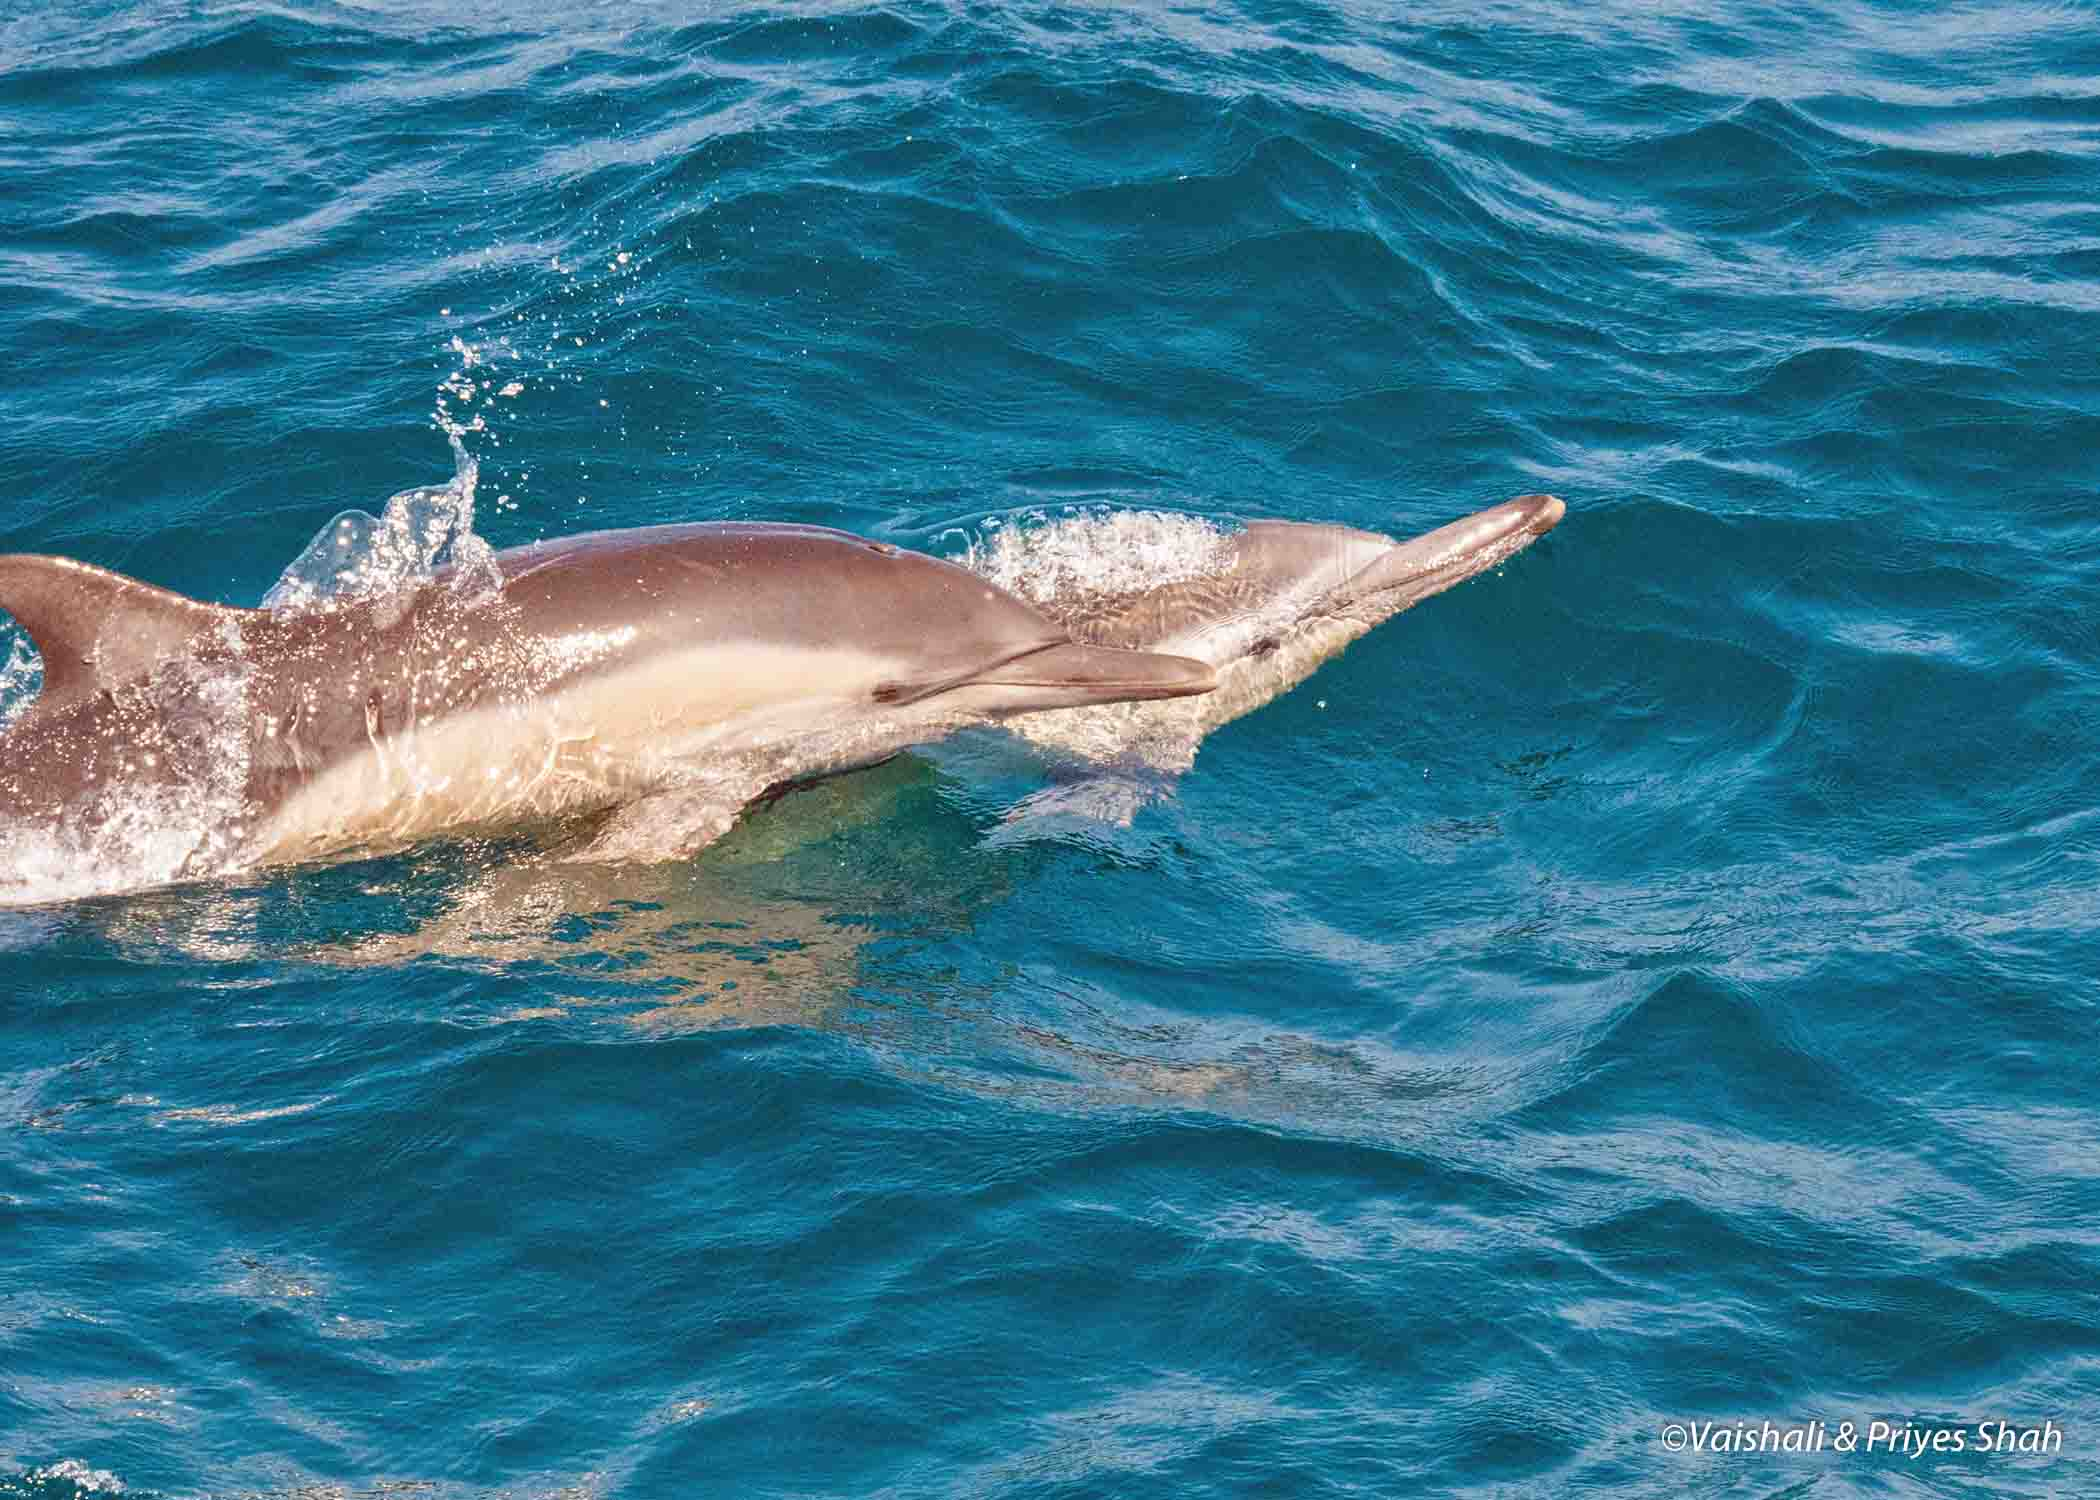 Common dolphins seen while whale watching